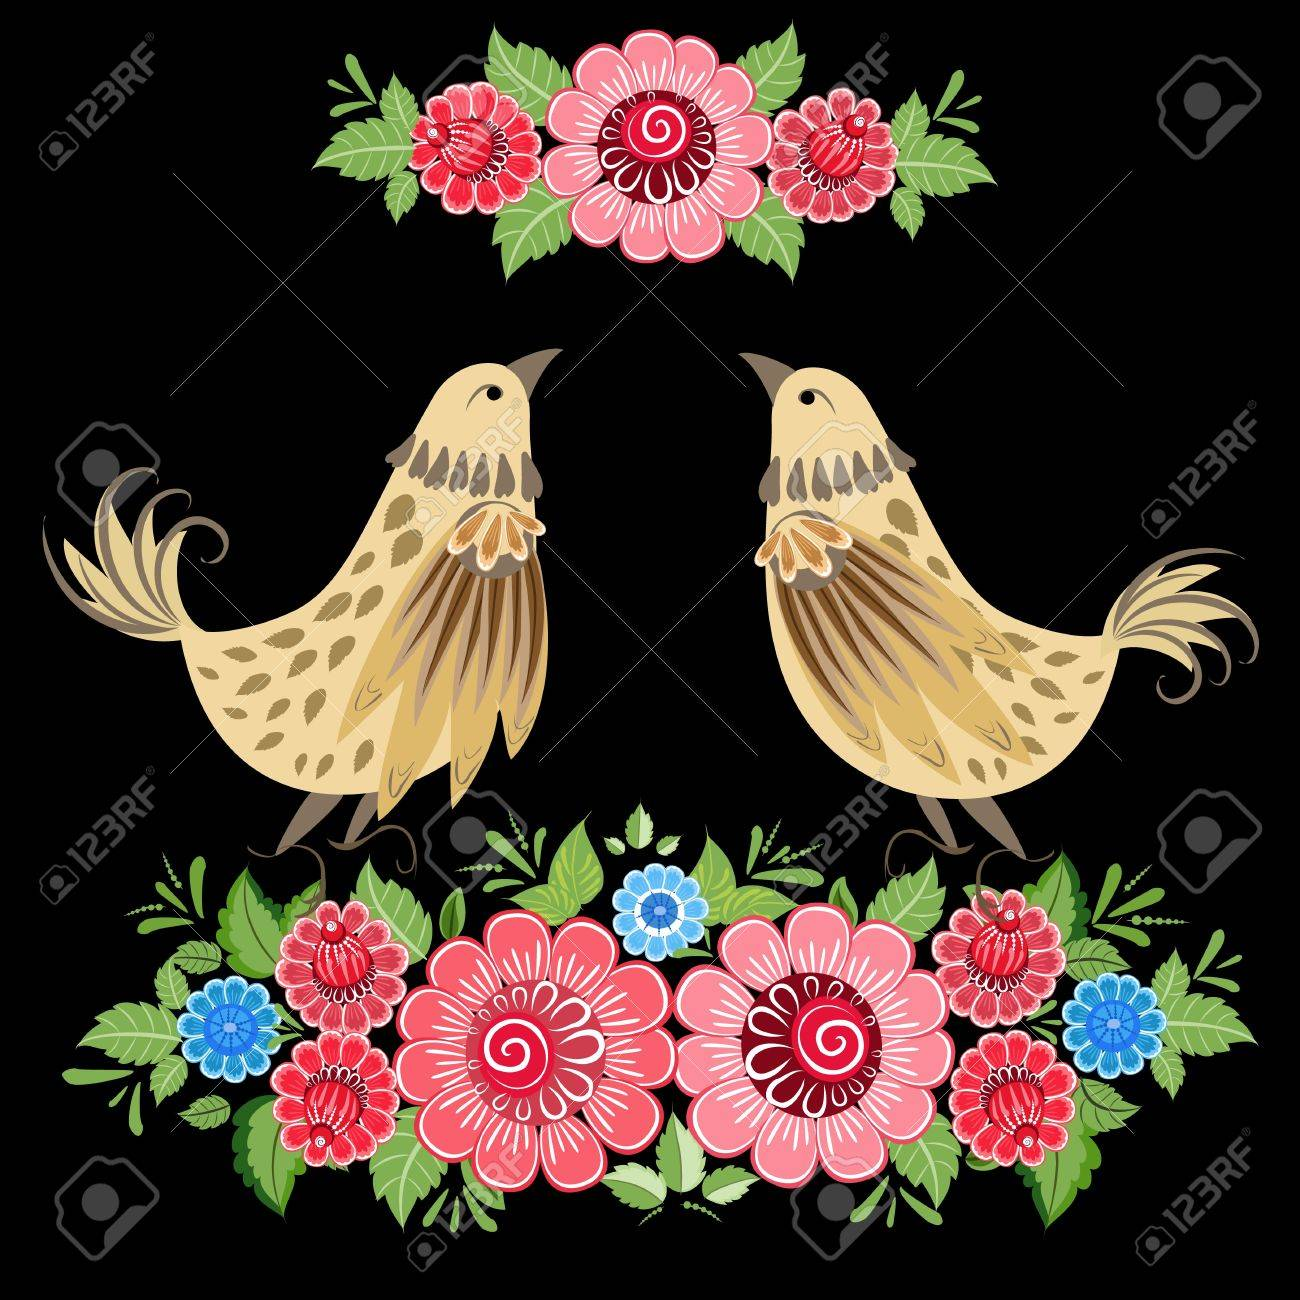 Decorative bird in flowers Khokhloma Stock Vector - 16432874